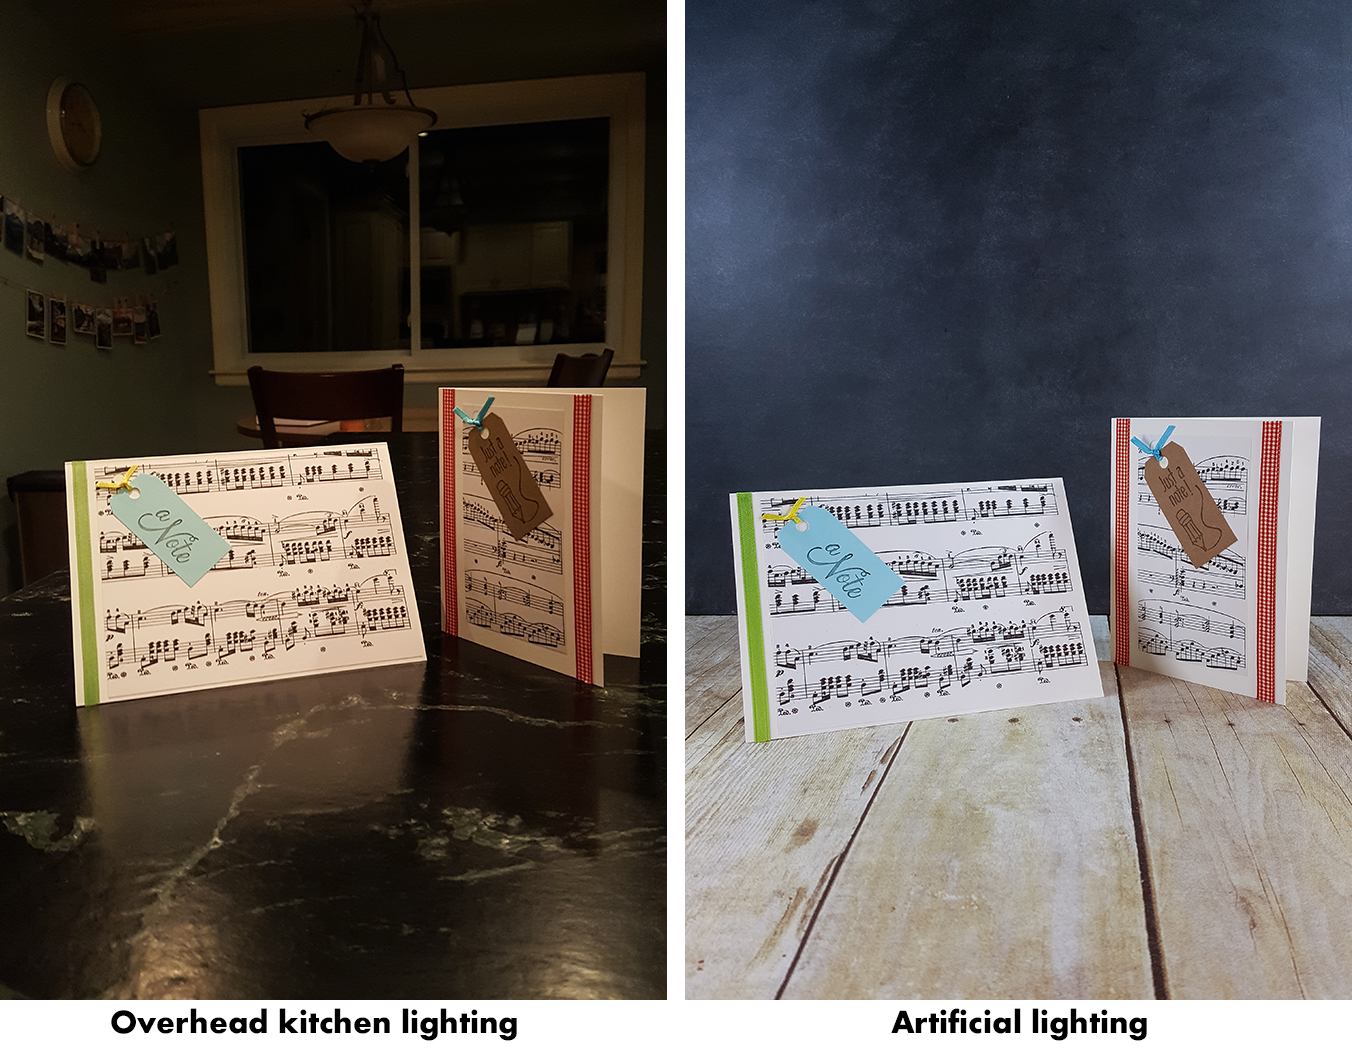 How to Take Better Photos for Your Blog With Your Phone - Overhead kitchen lighting vs. artificial lighting. | https://www.roseclearfield.com